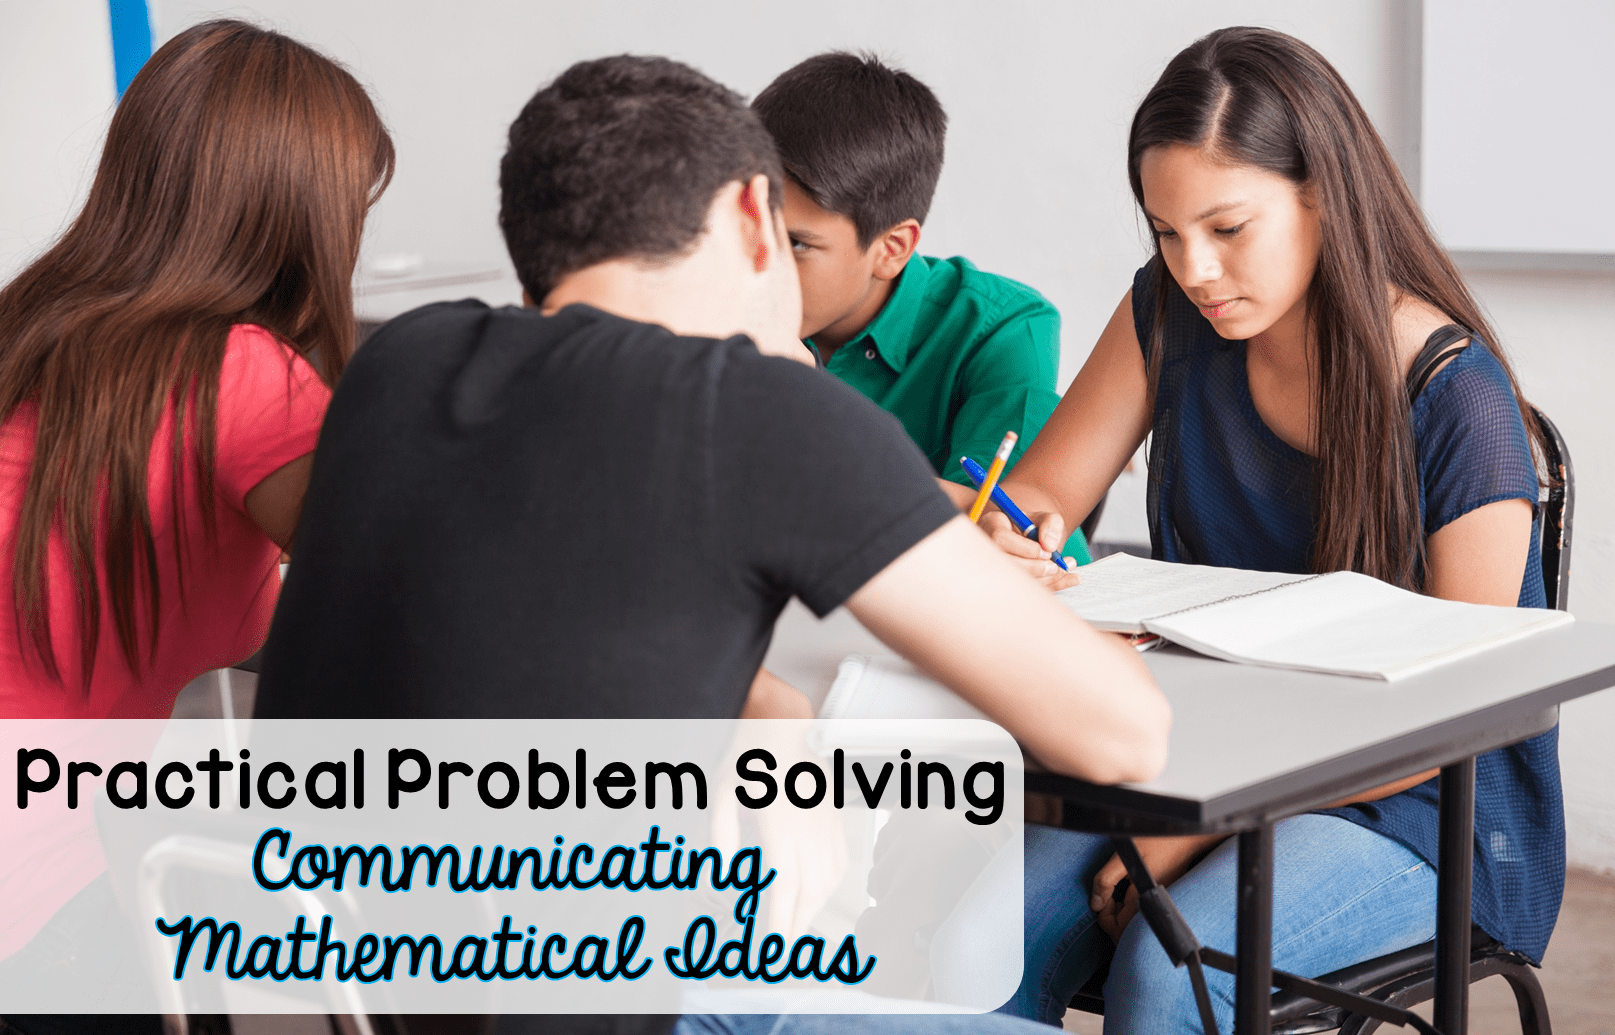 Practical Problems Solving involves more than just working on problems. Being an effective communicator of mathematical ideas allows students to make connections of mathematical skills and concepts.